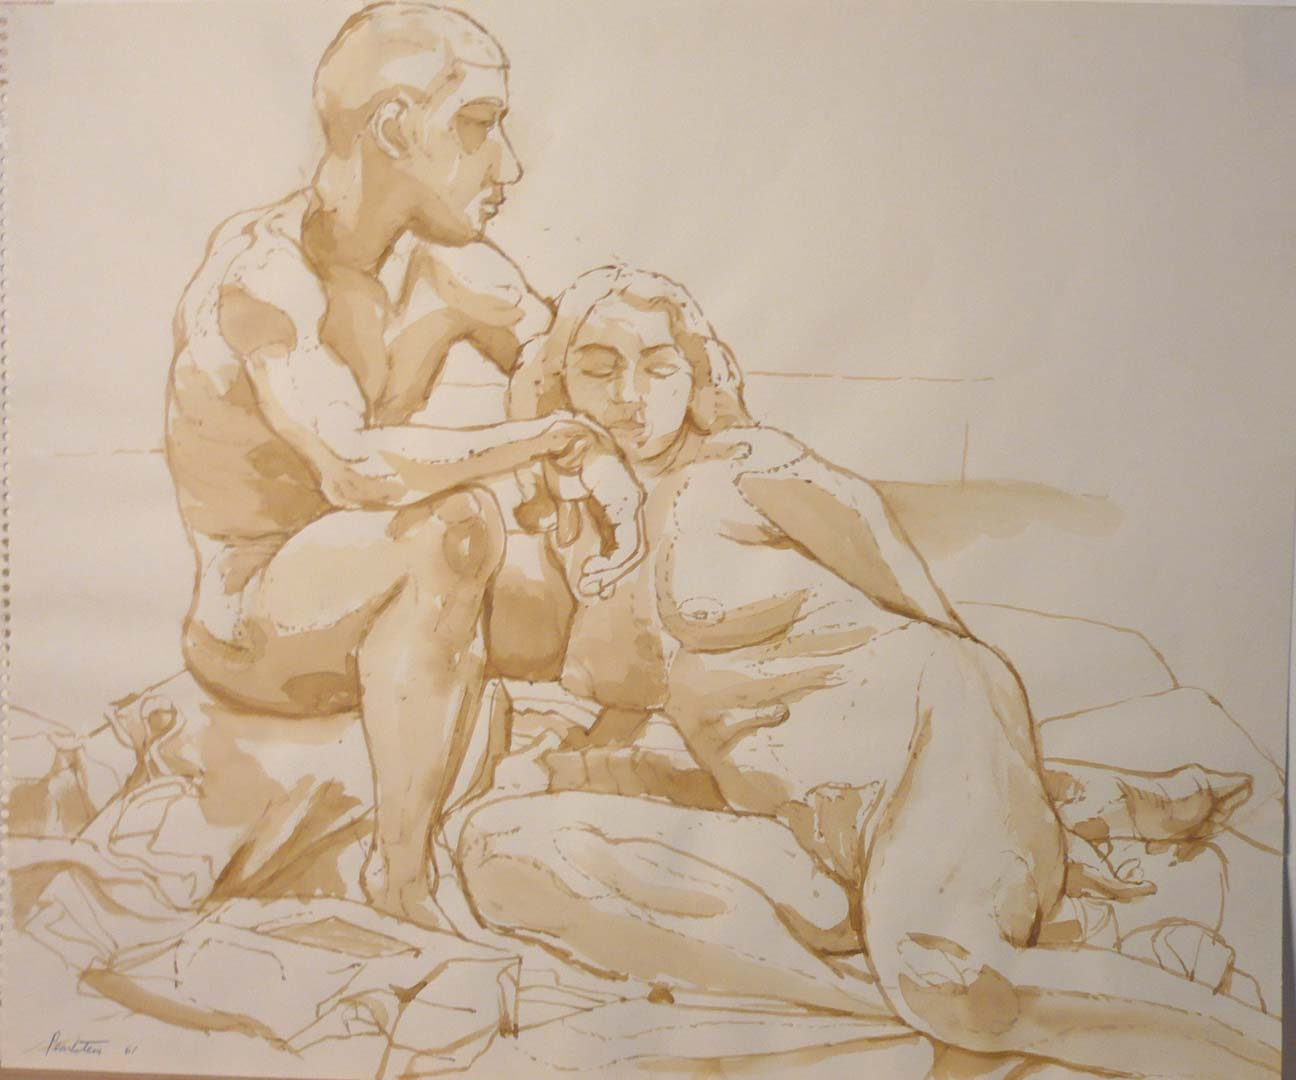 1961 Male and Female Models Seated on Floor Sepia on Paper 14 x 16.75